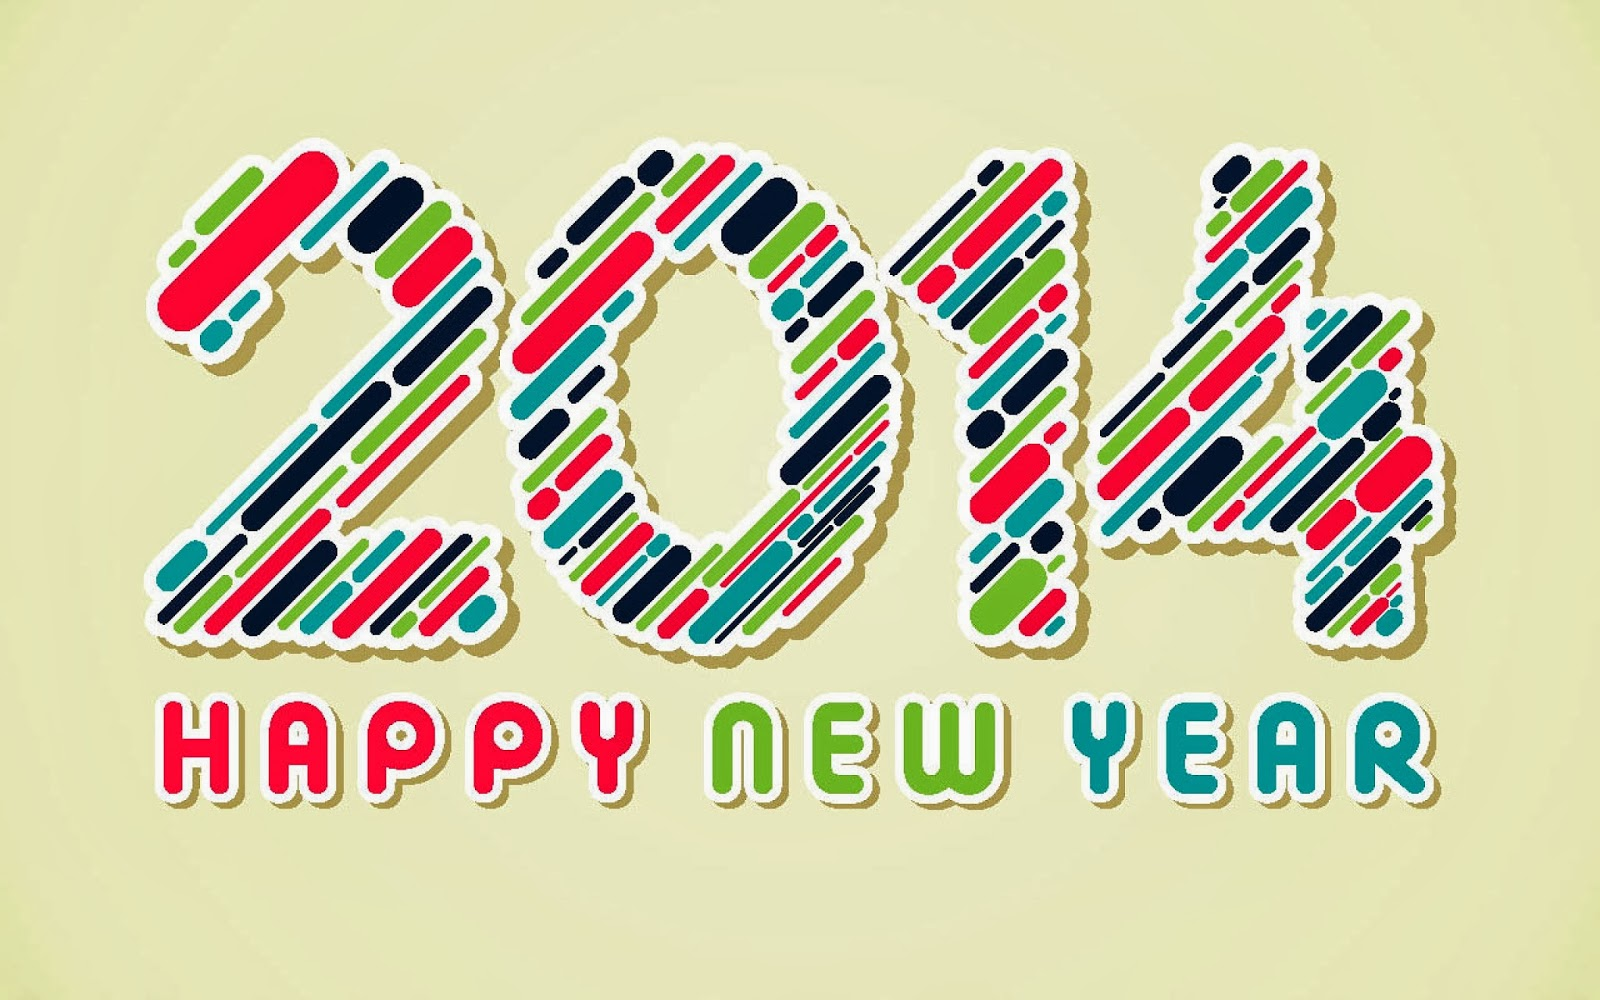 Happy New Year 2014 Clip Art.6 Animated Happy New Year Clipart Free 2014